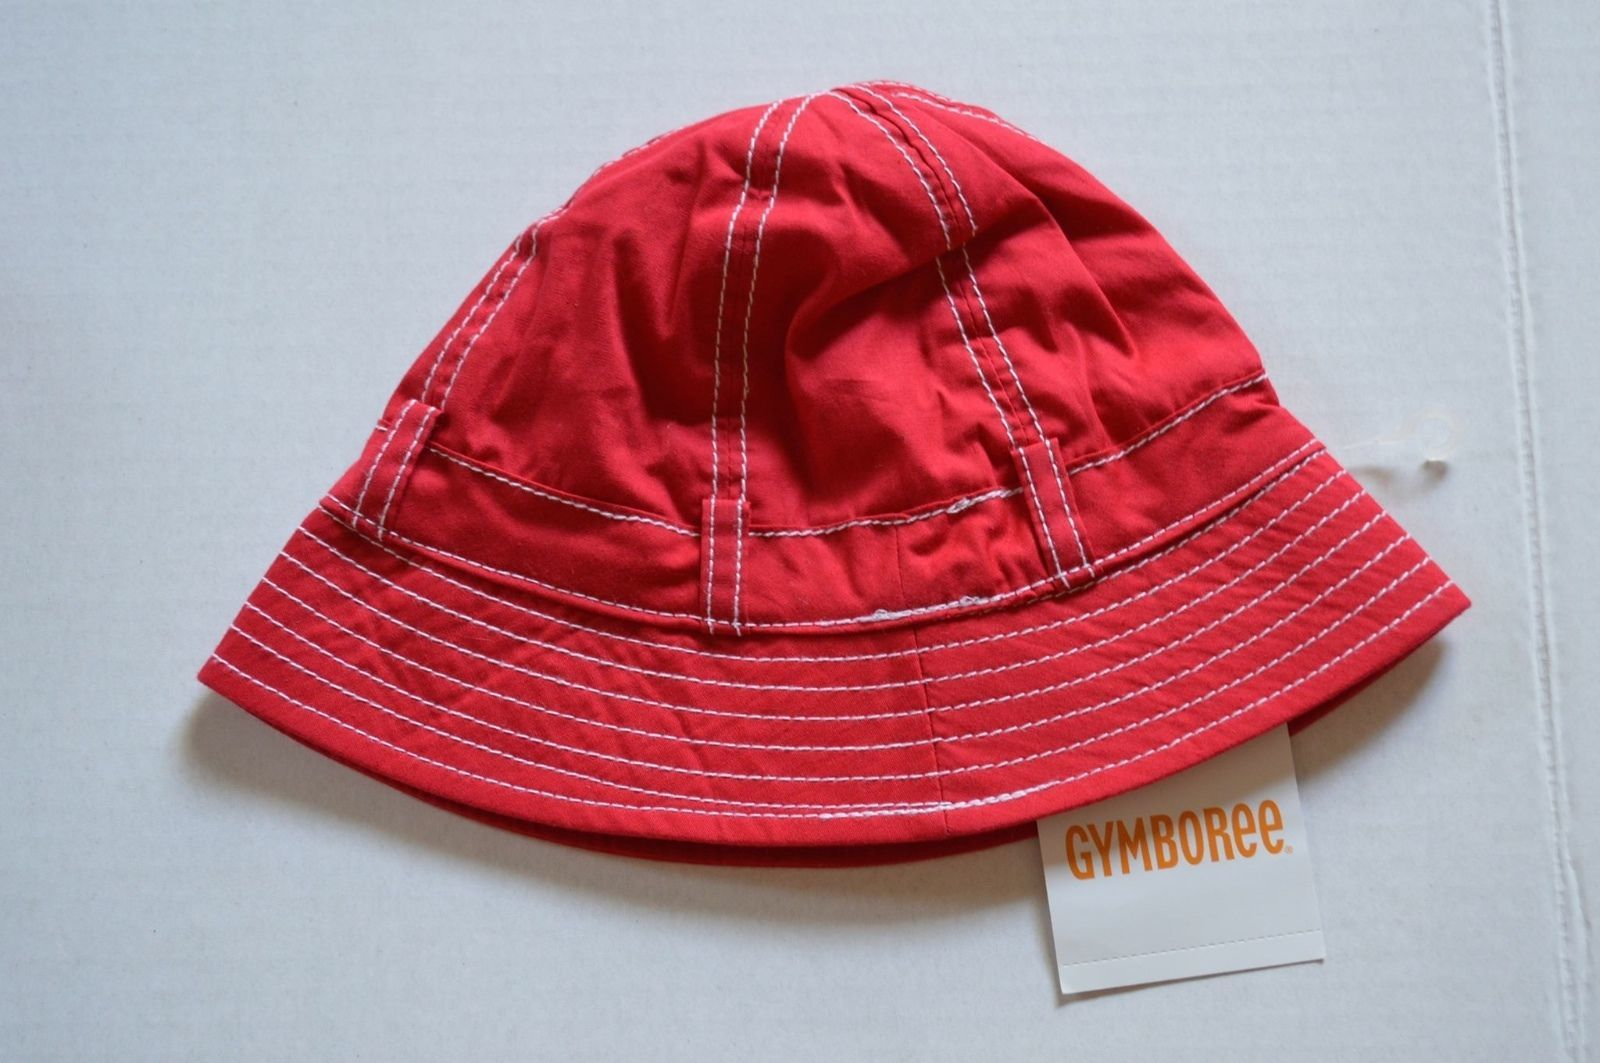 8fd32efdb2e Gymboree Infant Girl 0-12 Months red Sun Hat and 50 similar items